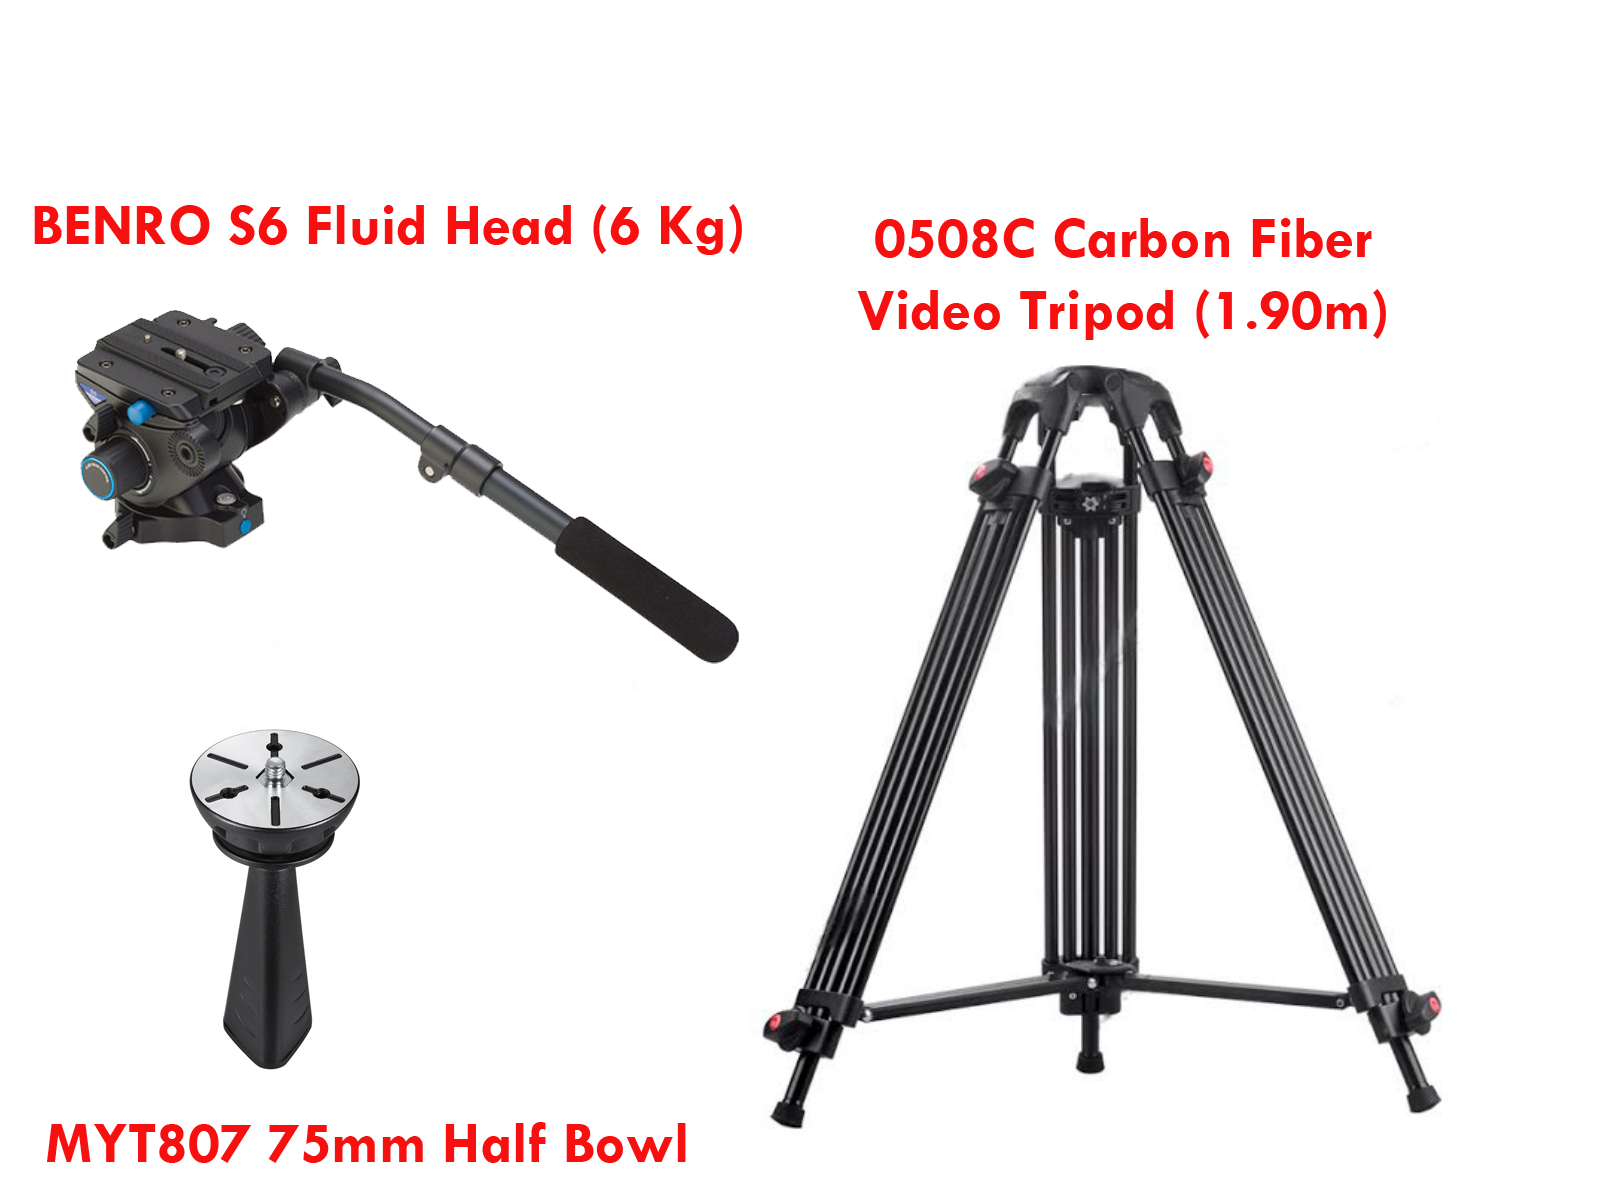 KIT BENRO S6 Fluid Head (6 Kg) + 0508C Carbon Fiber Video Tripod (1.90 m) + MYT807 75 mm Half Bowl